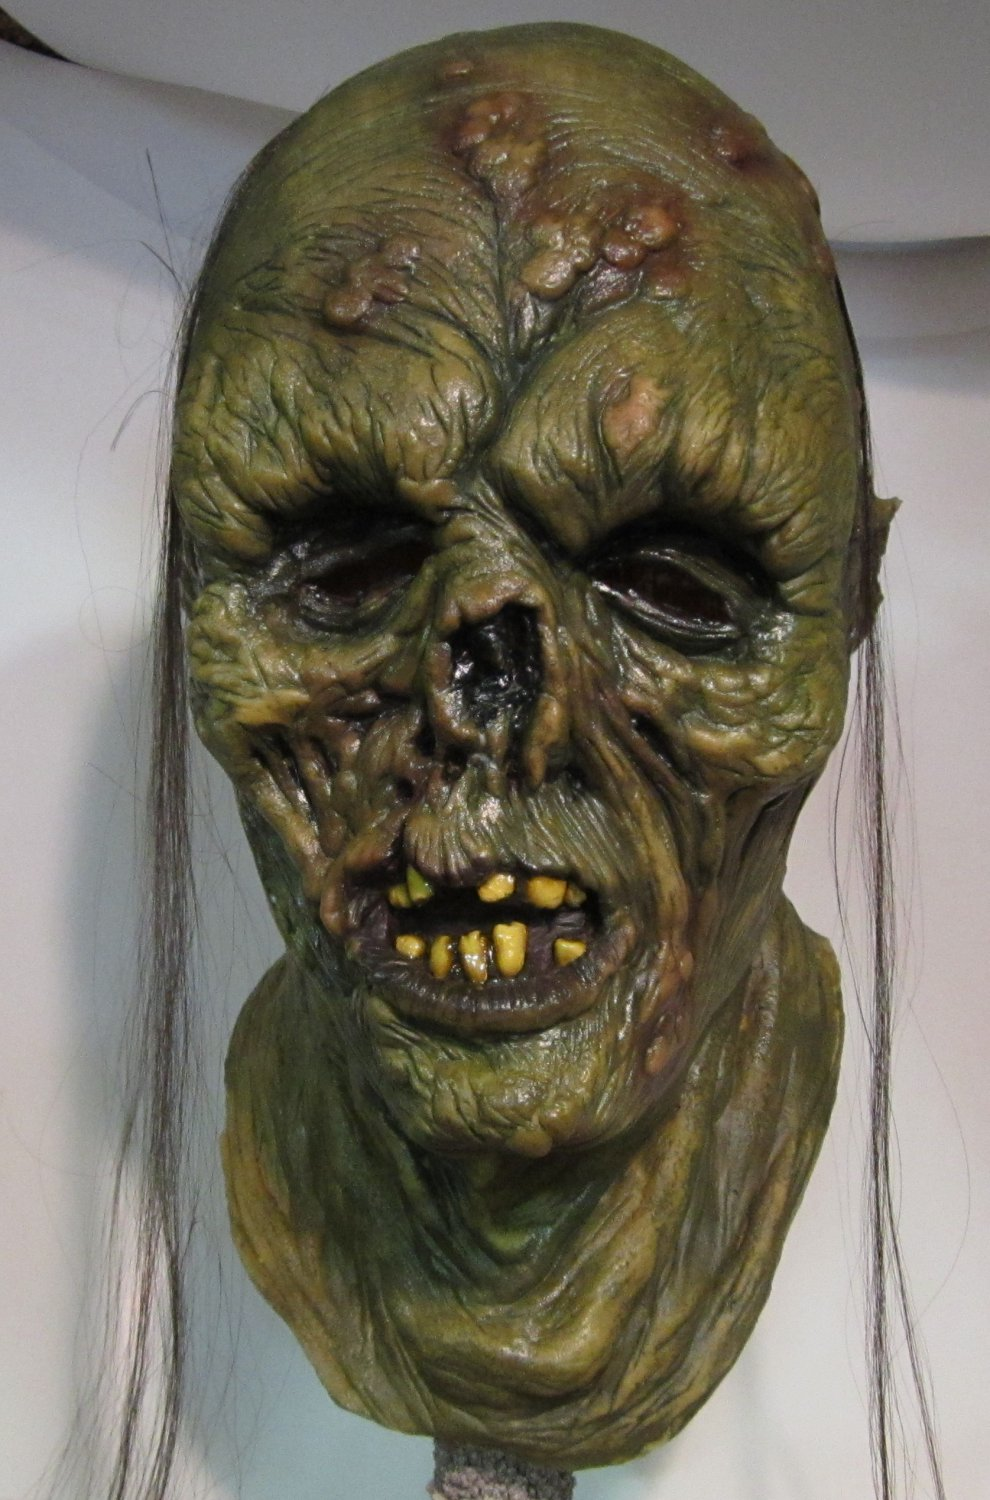 Decayed Flesh Rotting Corpse Zombie Undead Walking Dead Creature Scary Halloween Mask